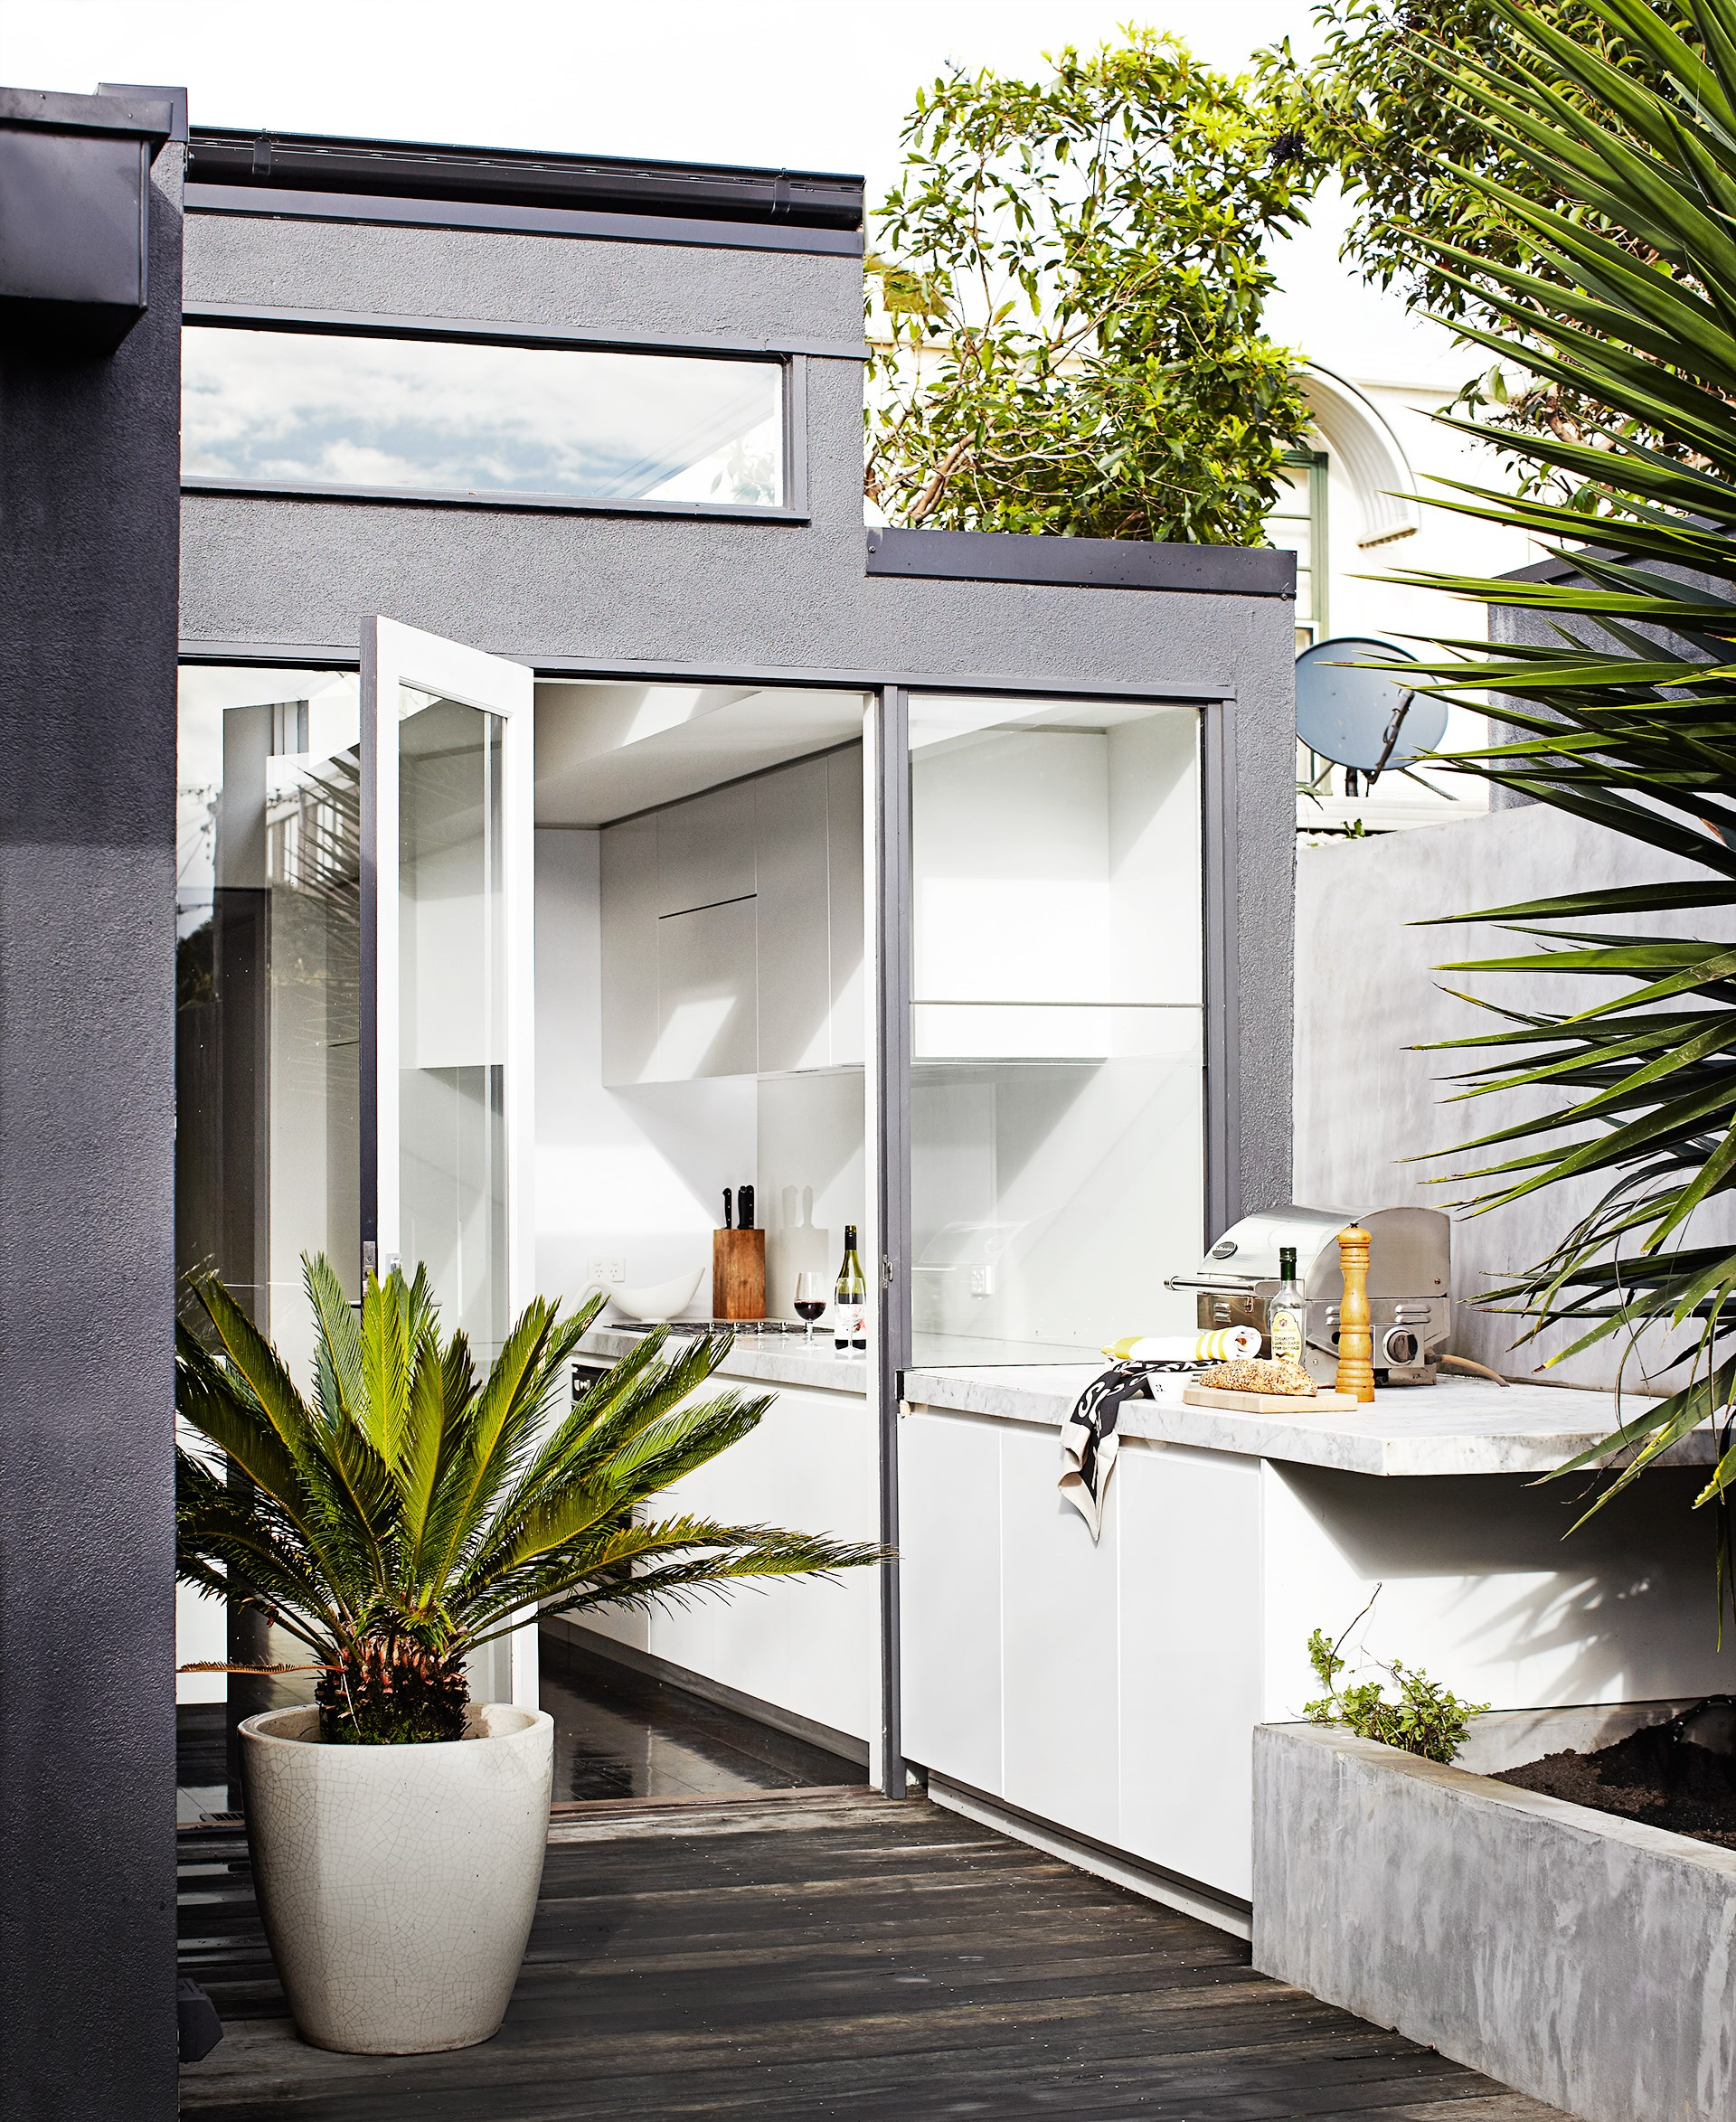 "The extension of the marble kitchen bench to the outdoor barbecue area creates a luxurious outdoor kitchen in this [sophisticated Melbourne villa](http://www.homestolove.com.au/inner-city-villa-with-a-timeless-cool-appeal-3509|target=""_blank""). Photo: Sharyn Cairns"